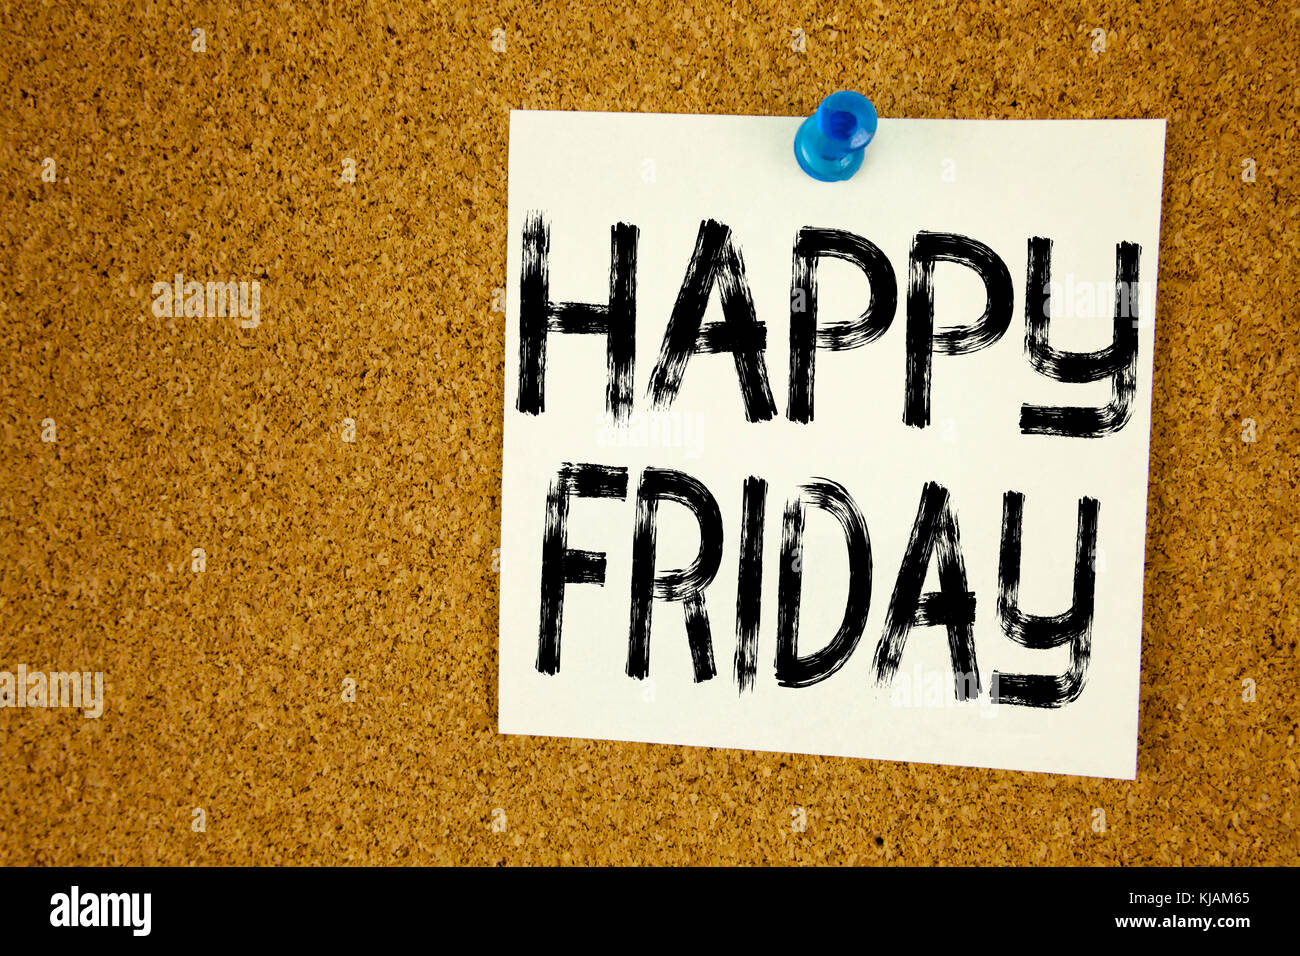 Conceptual hand writing text caption inspiration showing Happy Friday . Business concept for Greeting Announcement - Stock Image